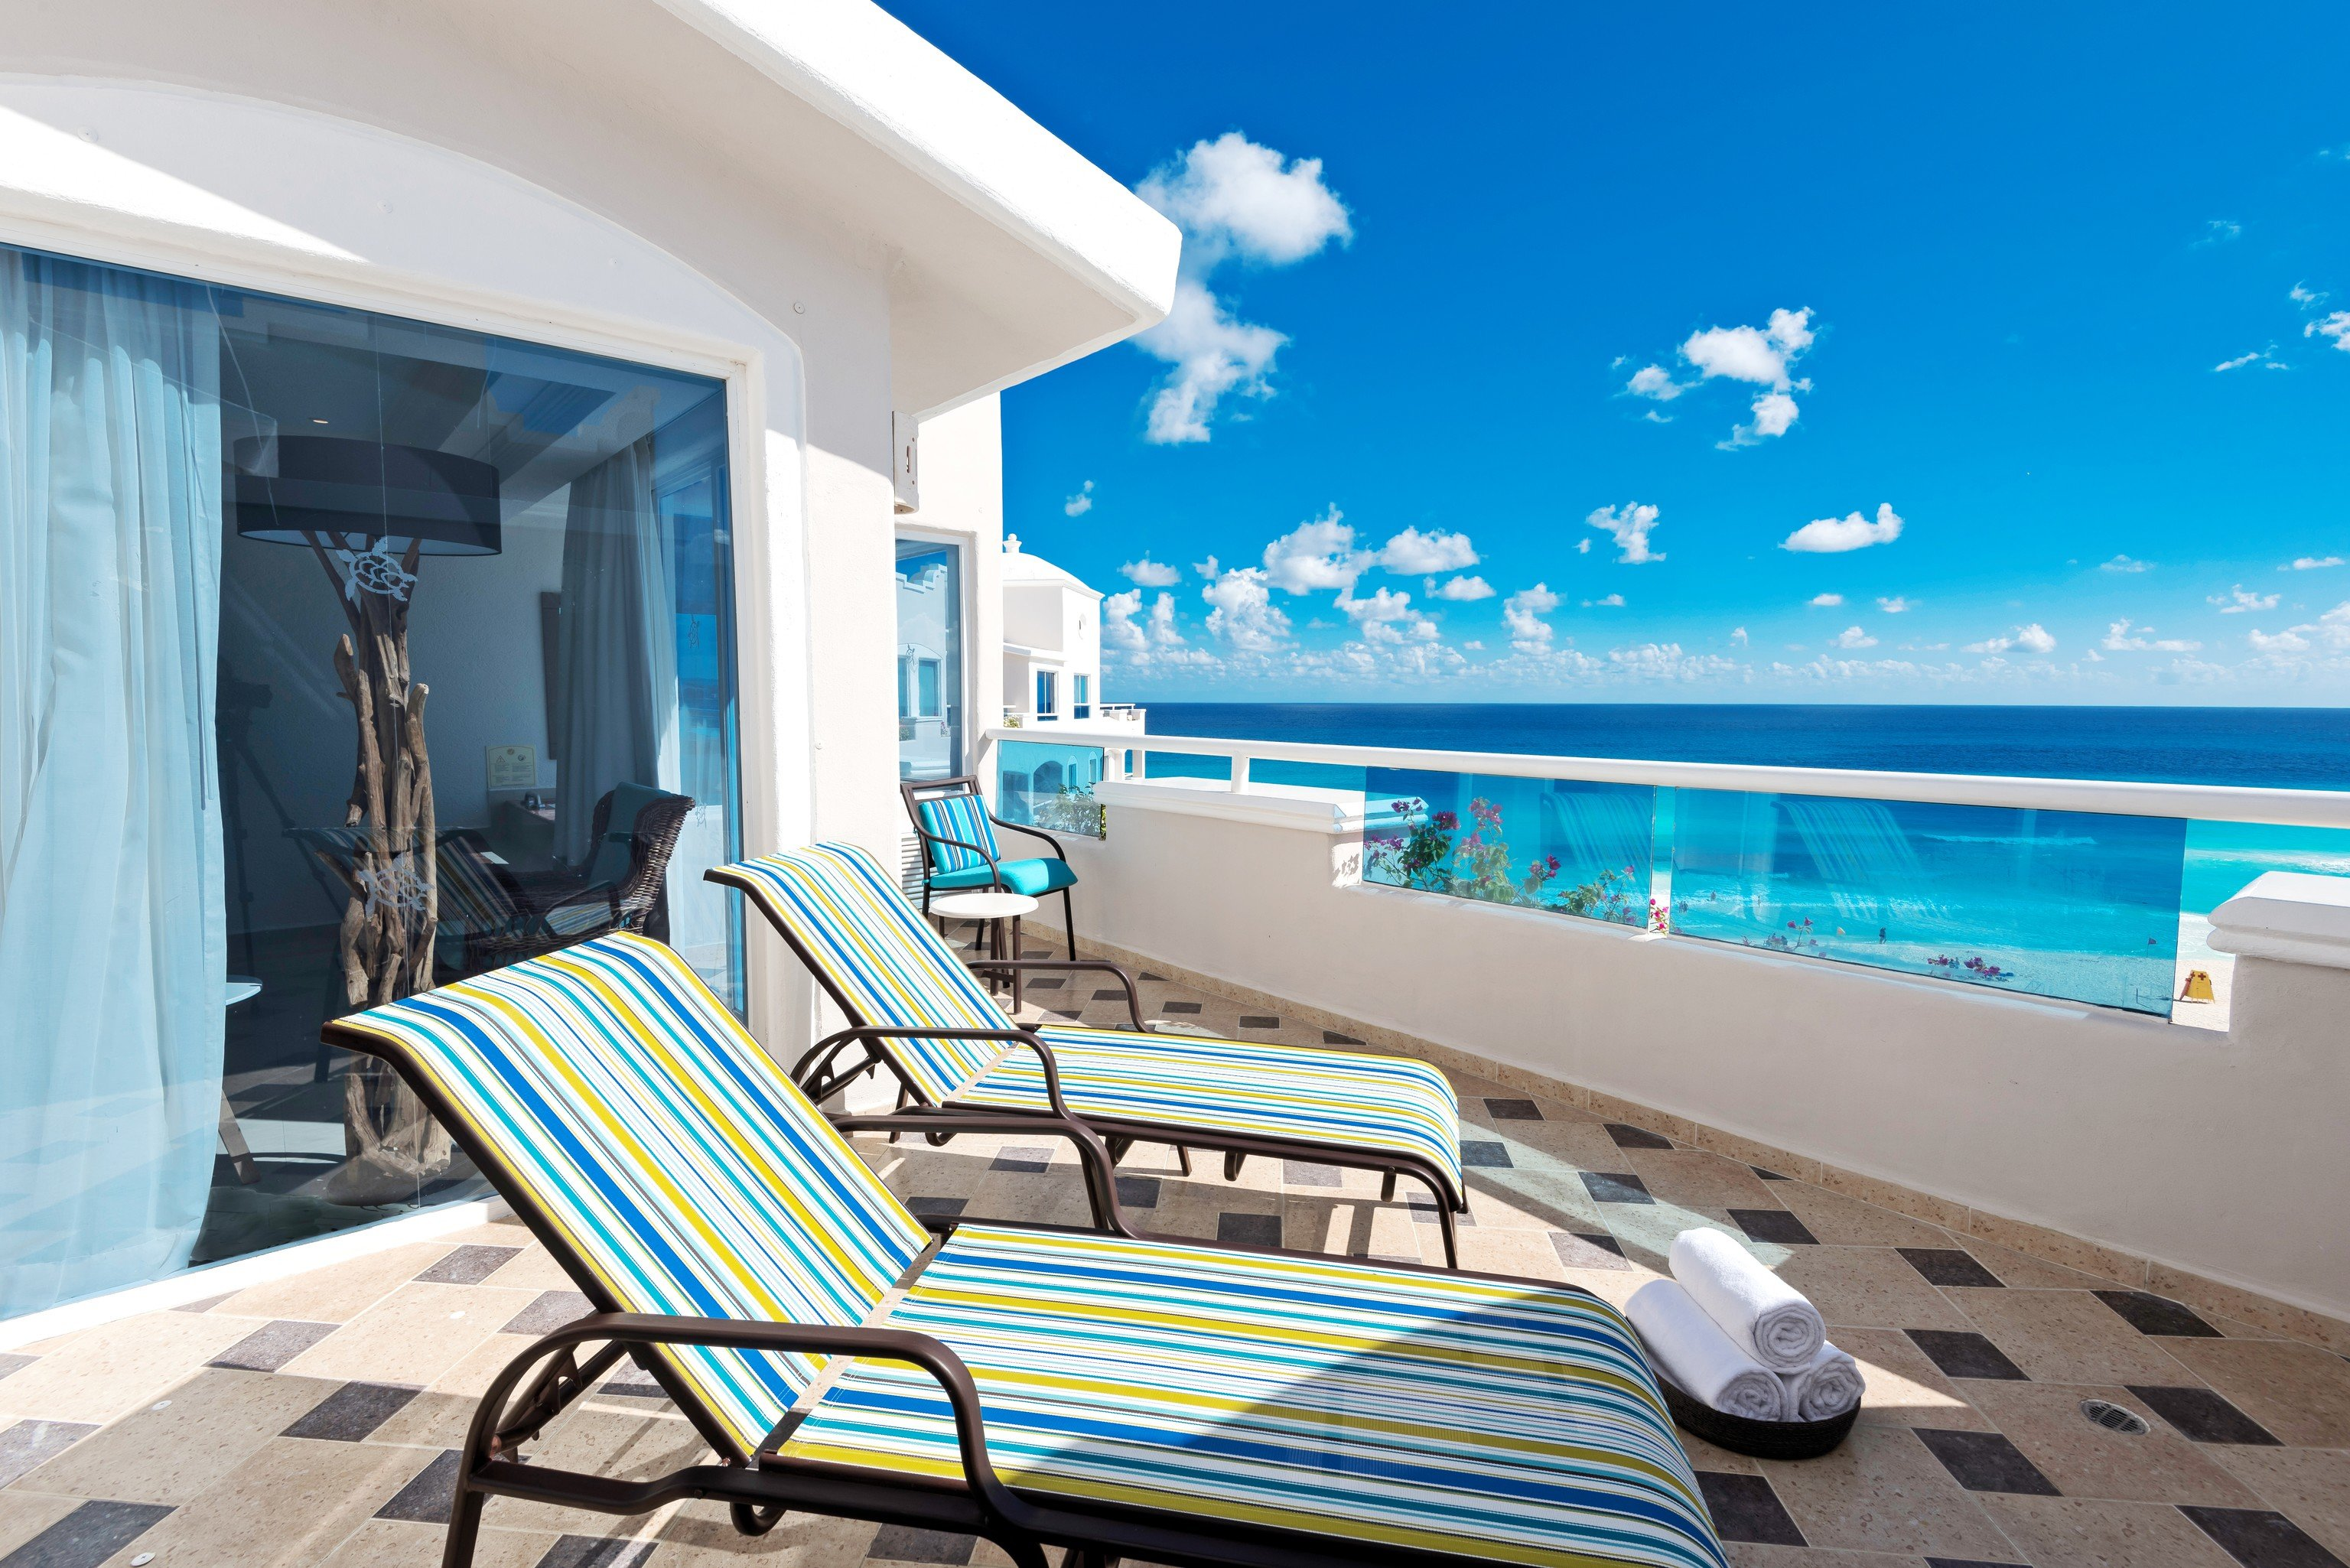 All-Inclusive Resorts caribbean Family Travel Hotels property swimming pool Resort estate vacation real estate home apartment Sea penthouse apartment sunlounger Villa sky leisure outdoor furniture interior design resort town condominium hotel Balcony